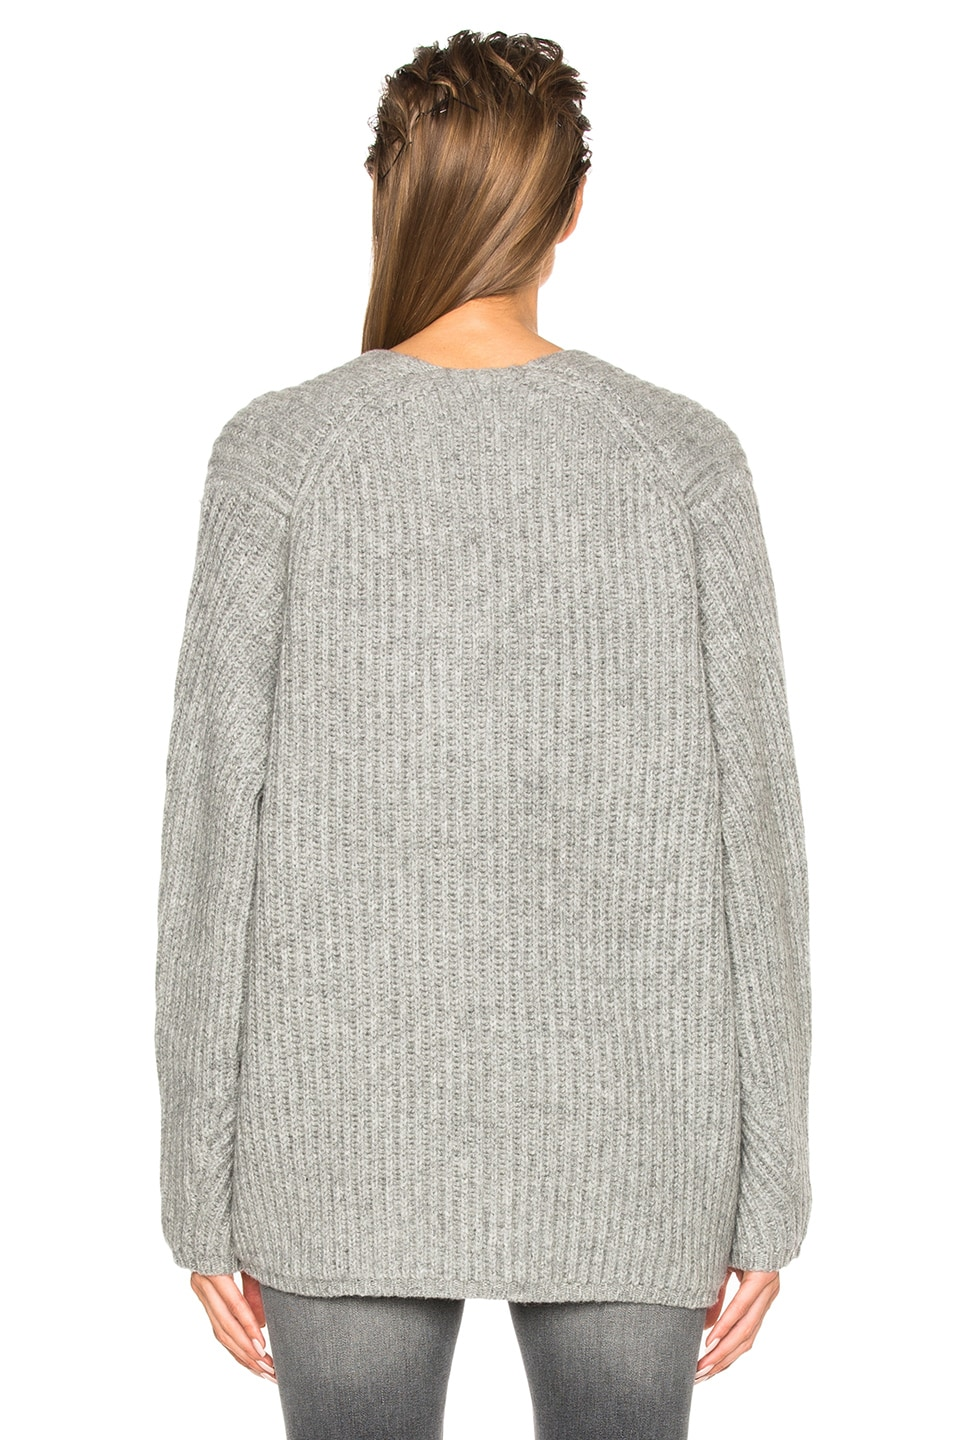 Image 4 of Acne Studios Deborah Sweater in Pale Grey Melange